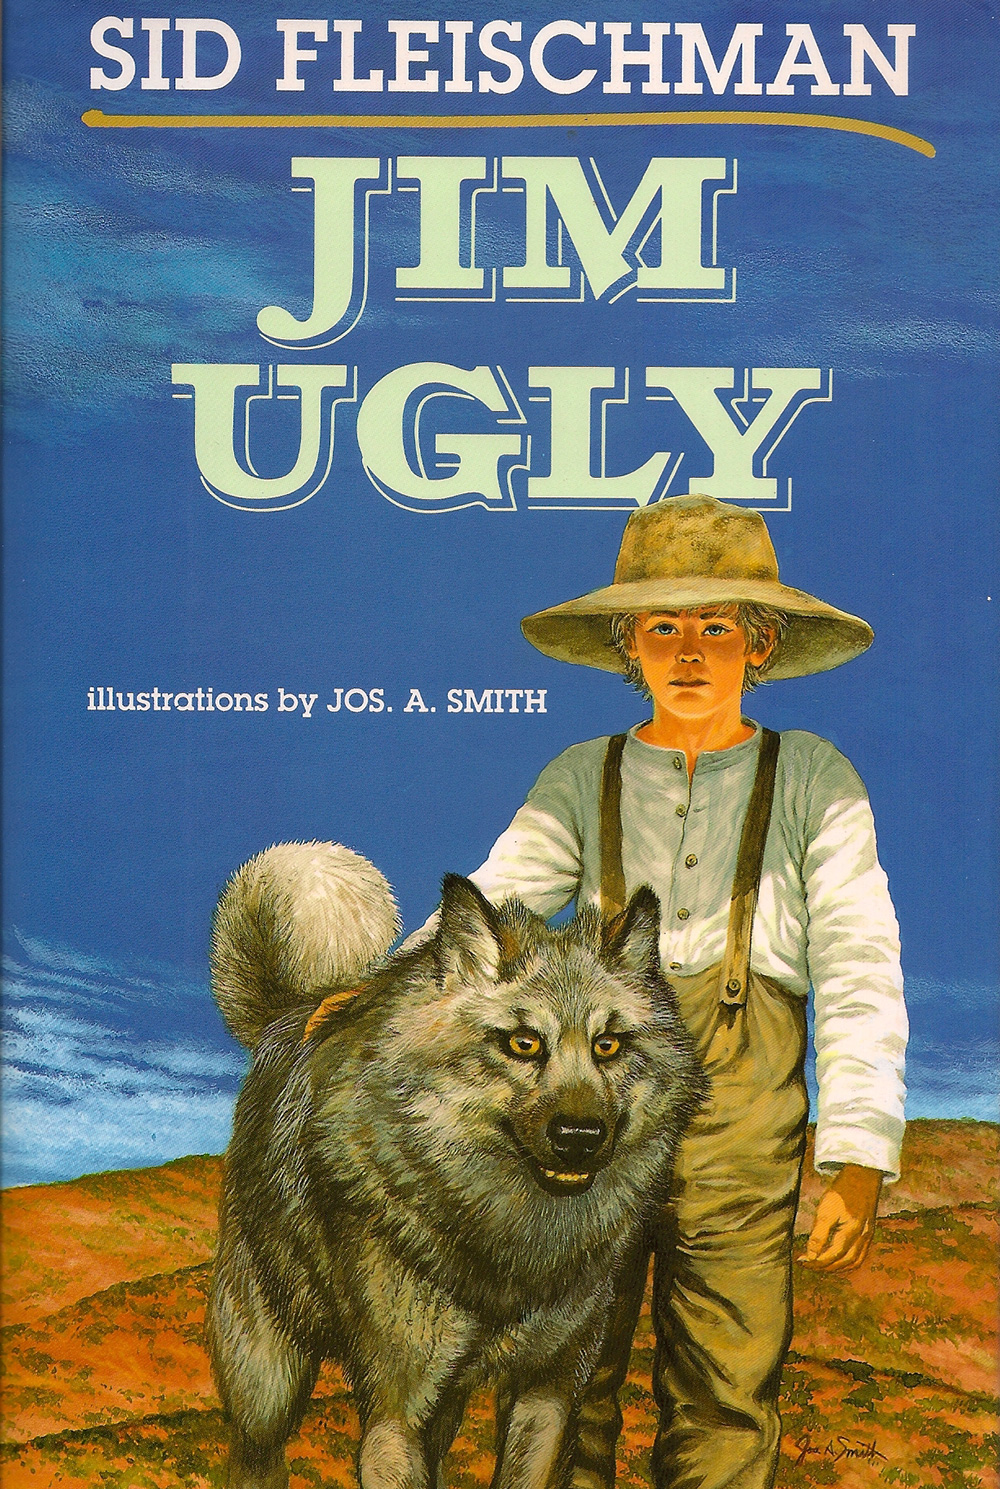 Jim Ugly - Illustrated by Jos A. Smith Notable book, American Library Association Jake inherits a dog--who turns out to be half-wolf.